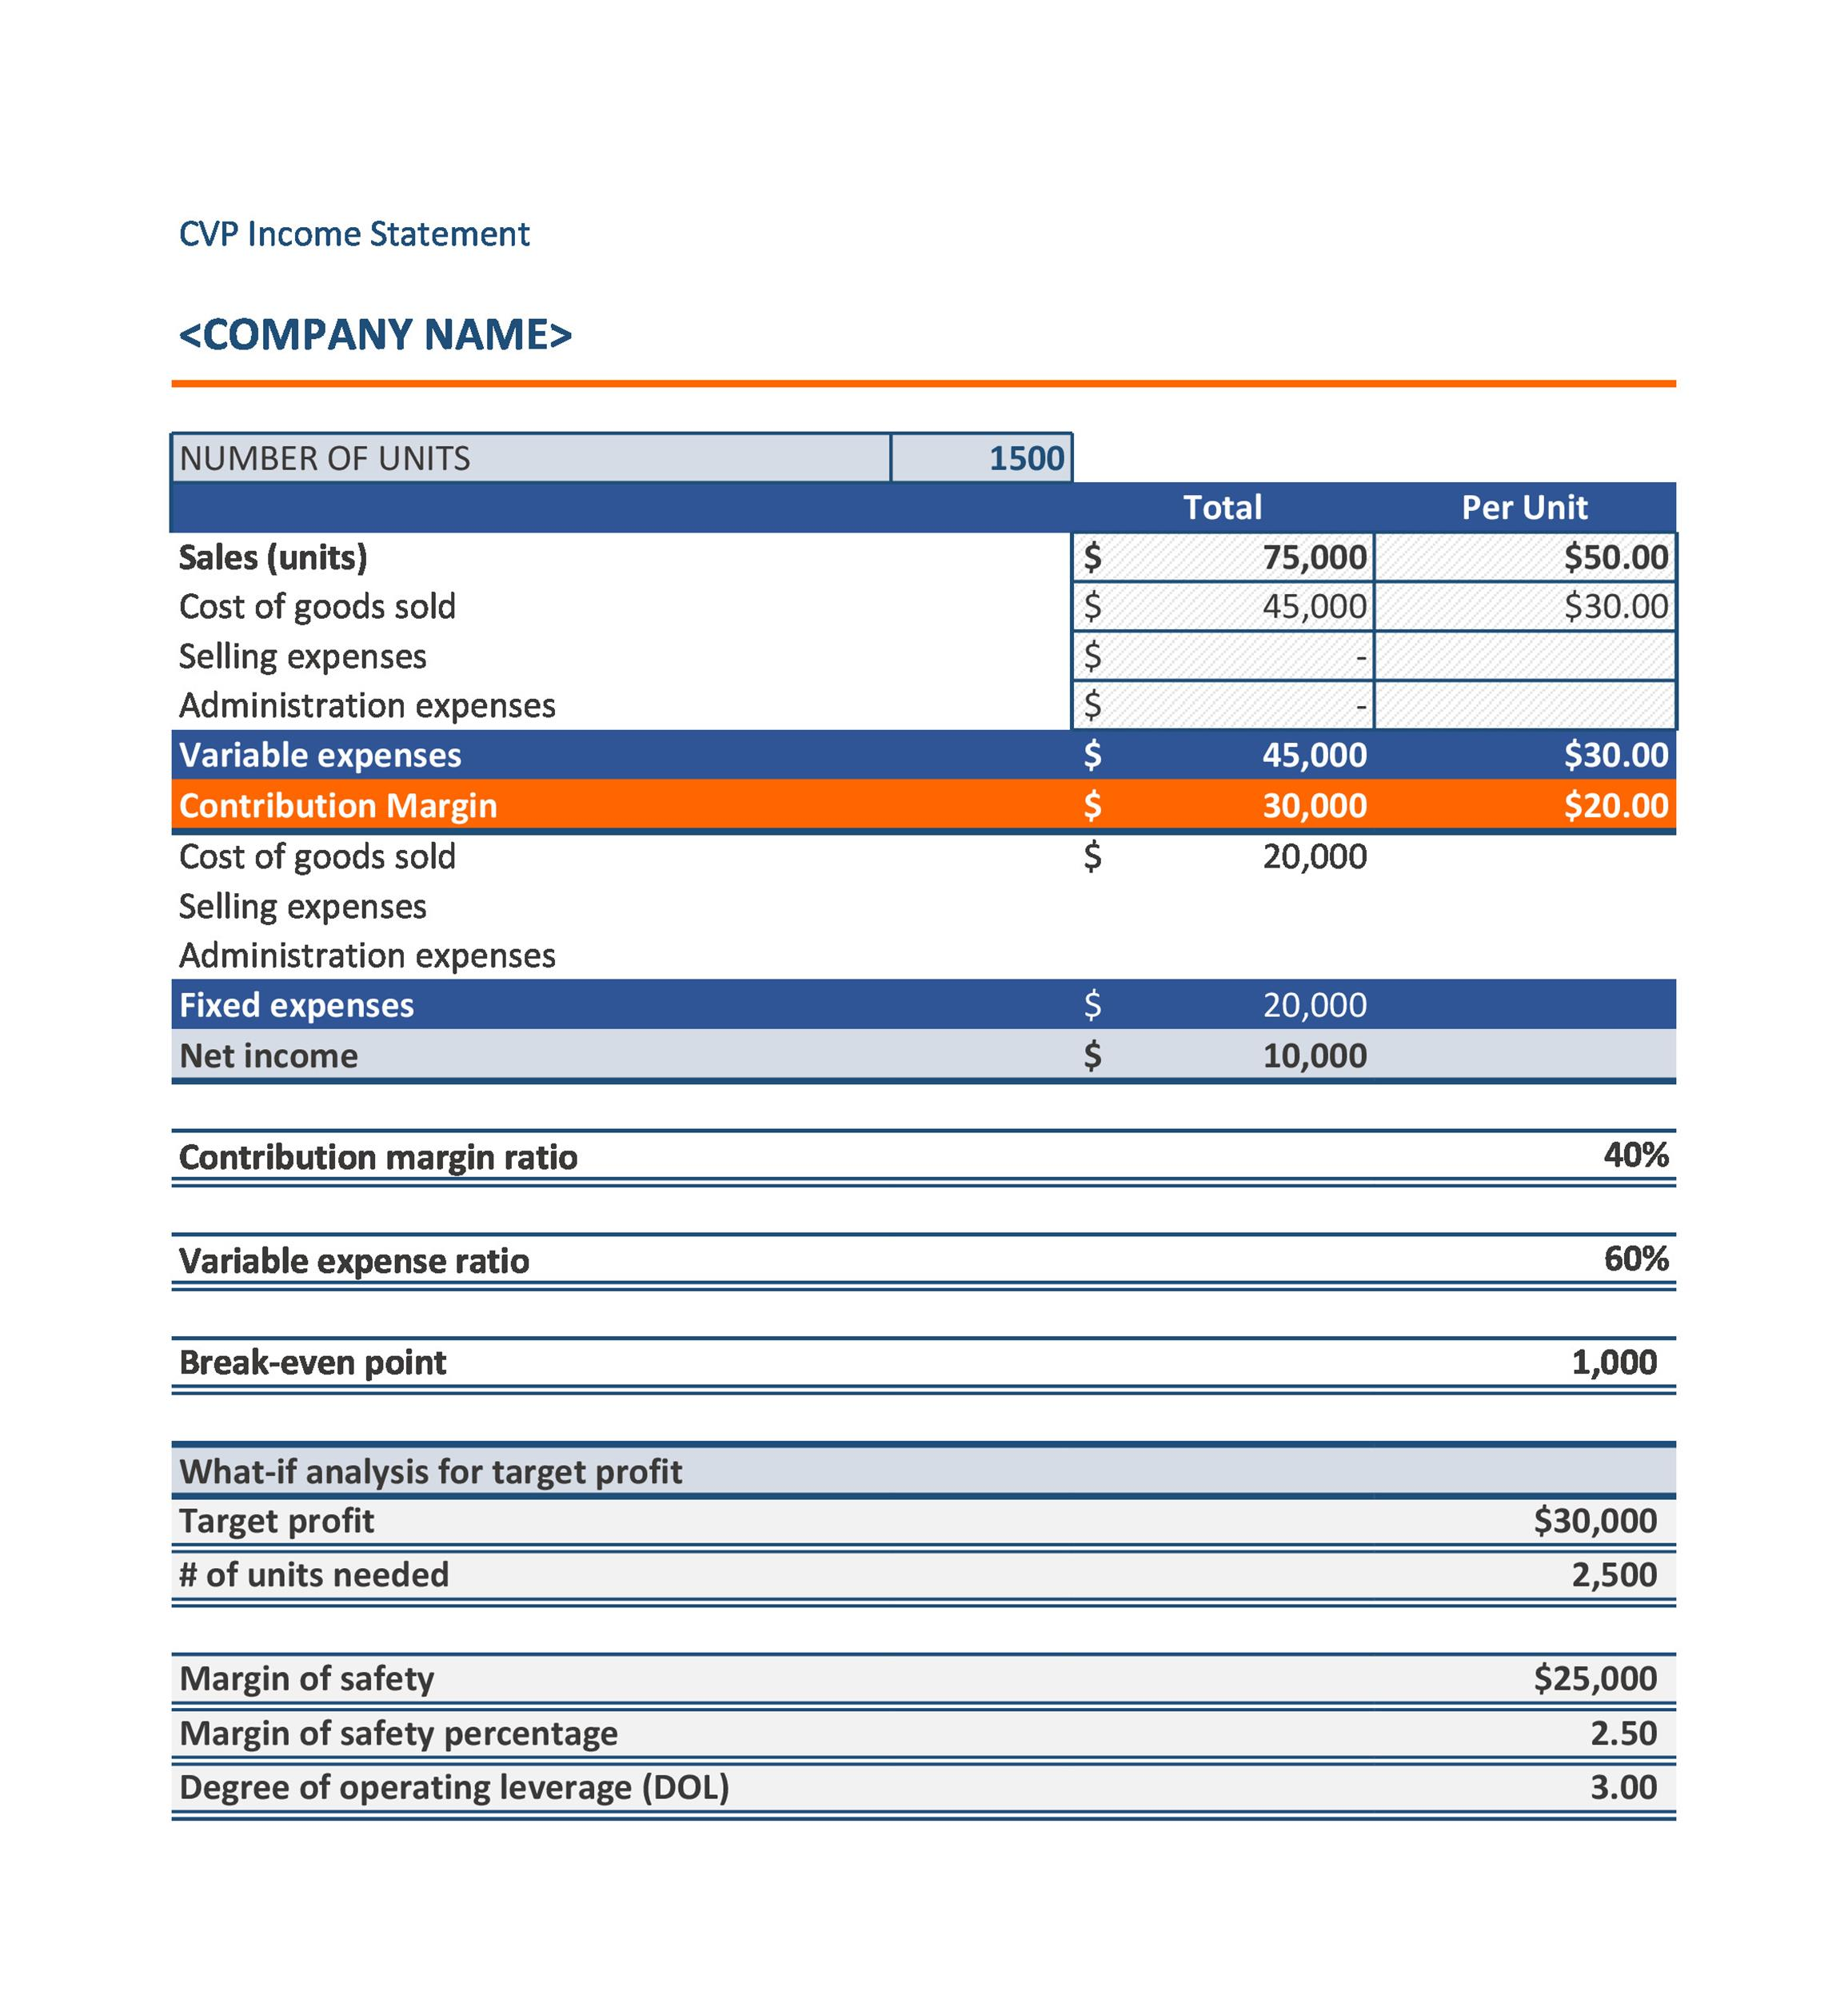 Free CVP Income Statement